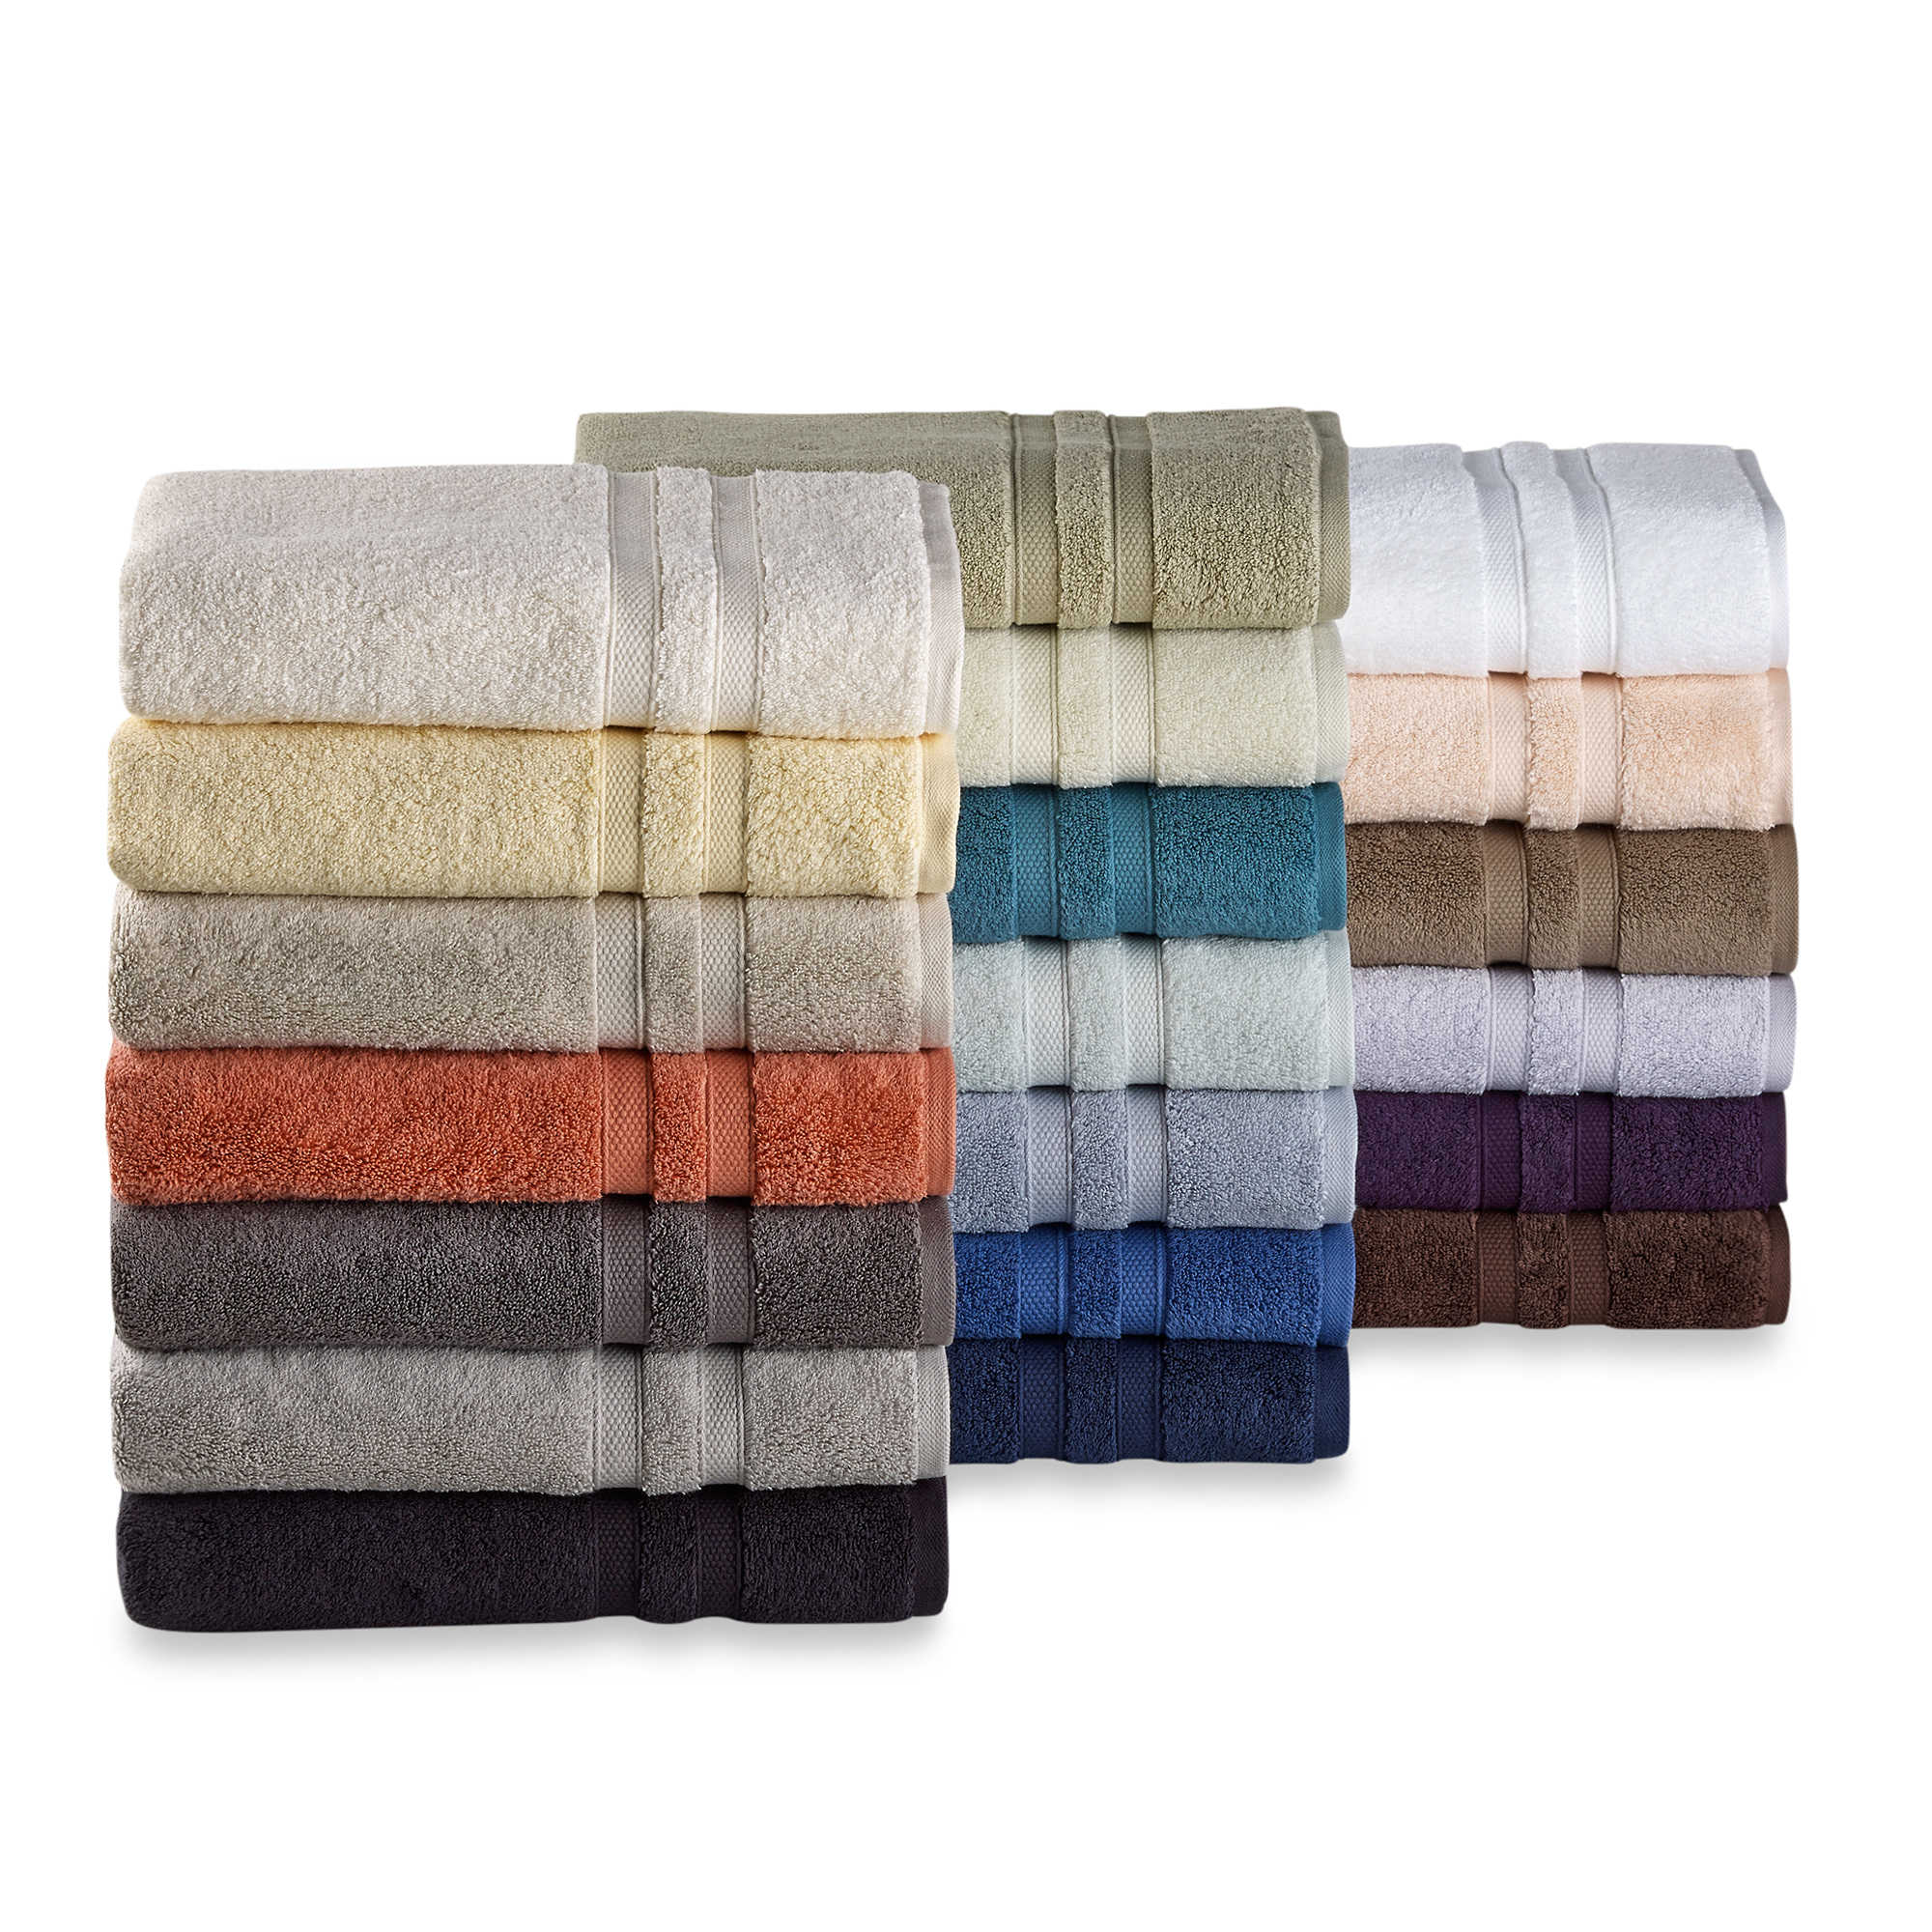 Bed Bath And Beyond Bathroom Rug Sets 2017 2018 Best Cars Reviews